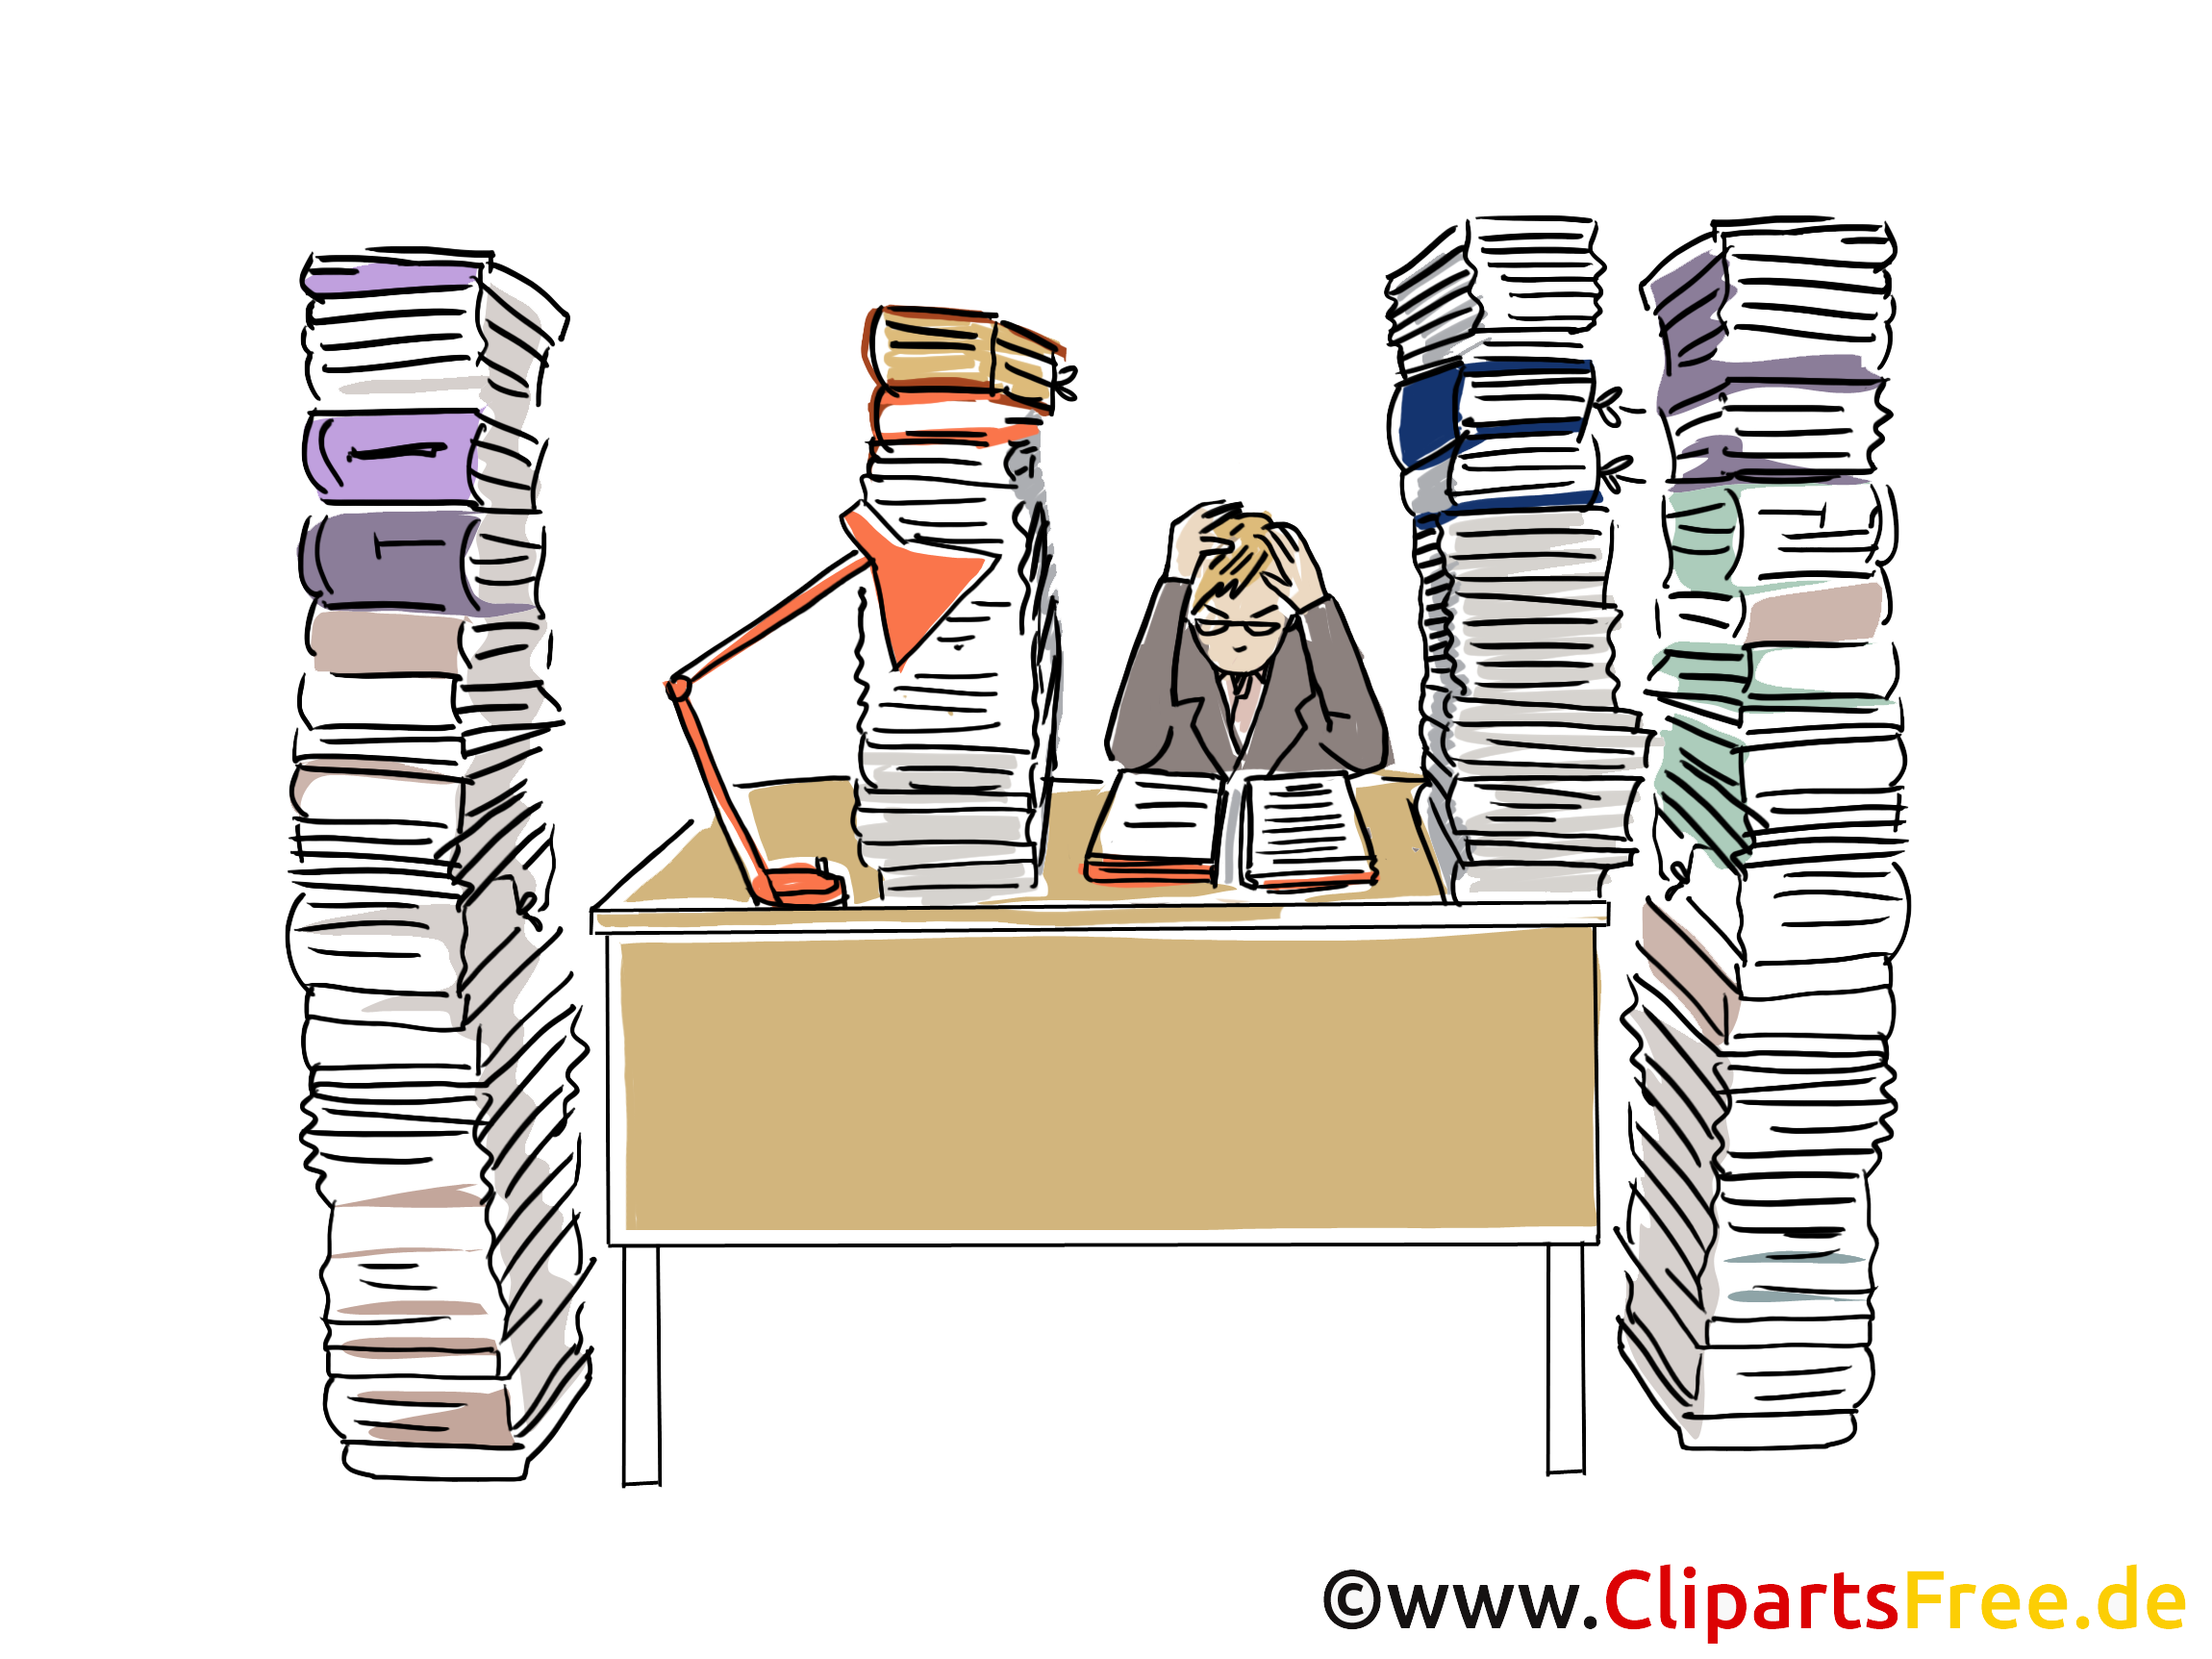 Arbeit clipart vector free library Clipart arbeit - ClipartFox vector free library